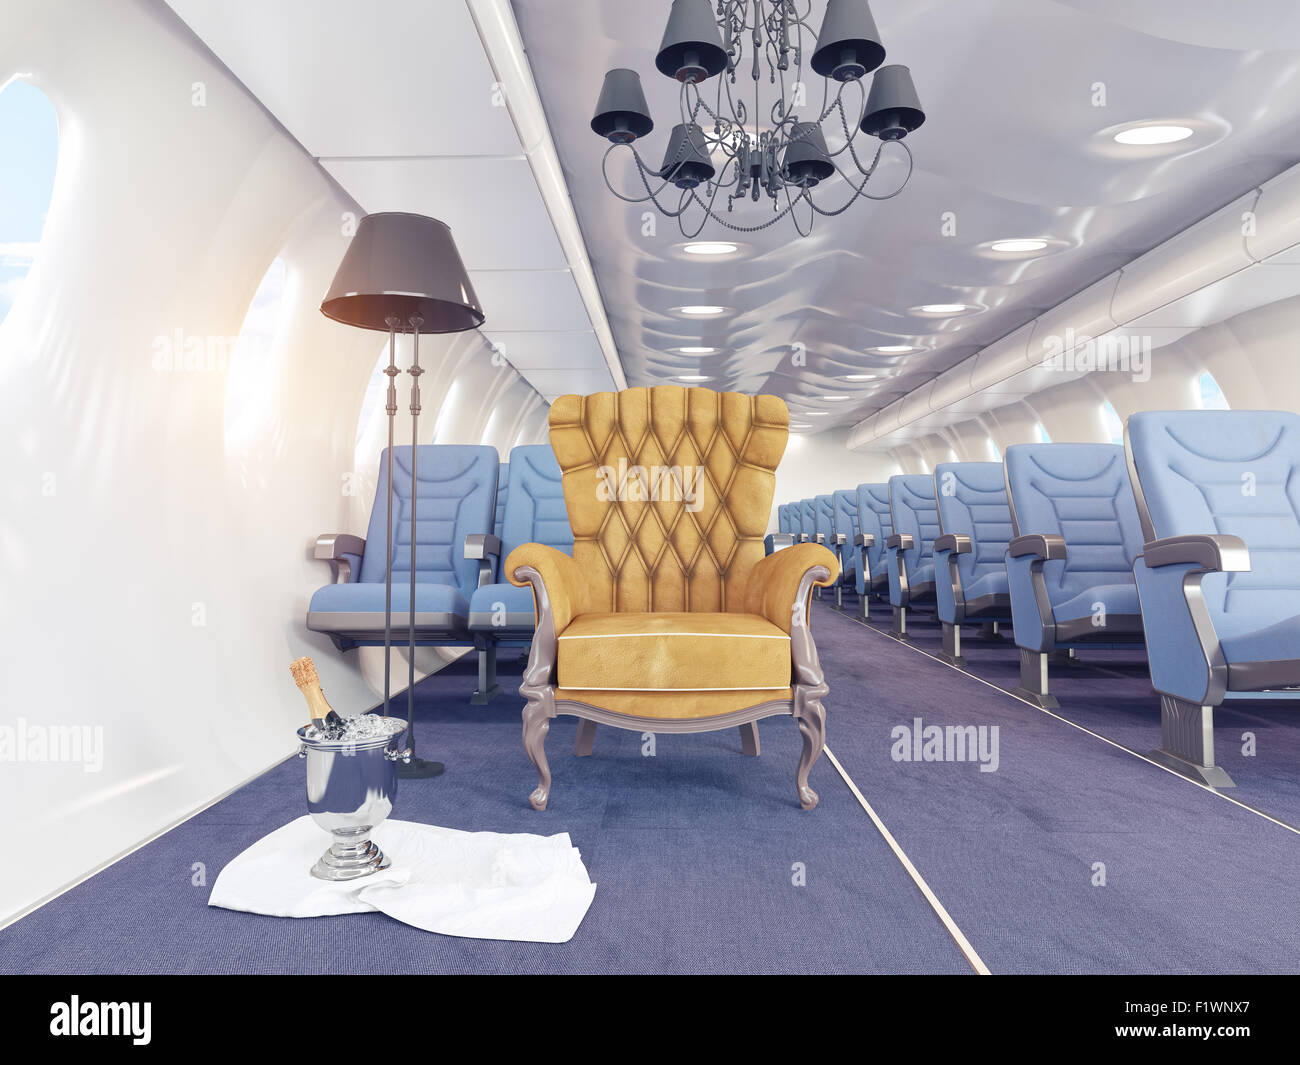 luxury armchair in airplane cabin. 3d creativity concept - Stock Image